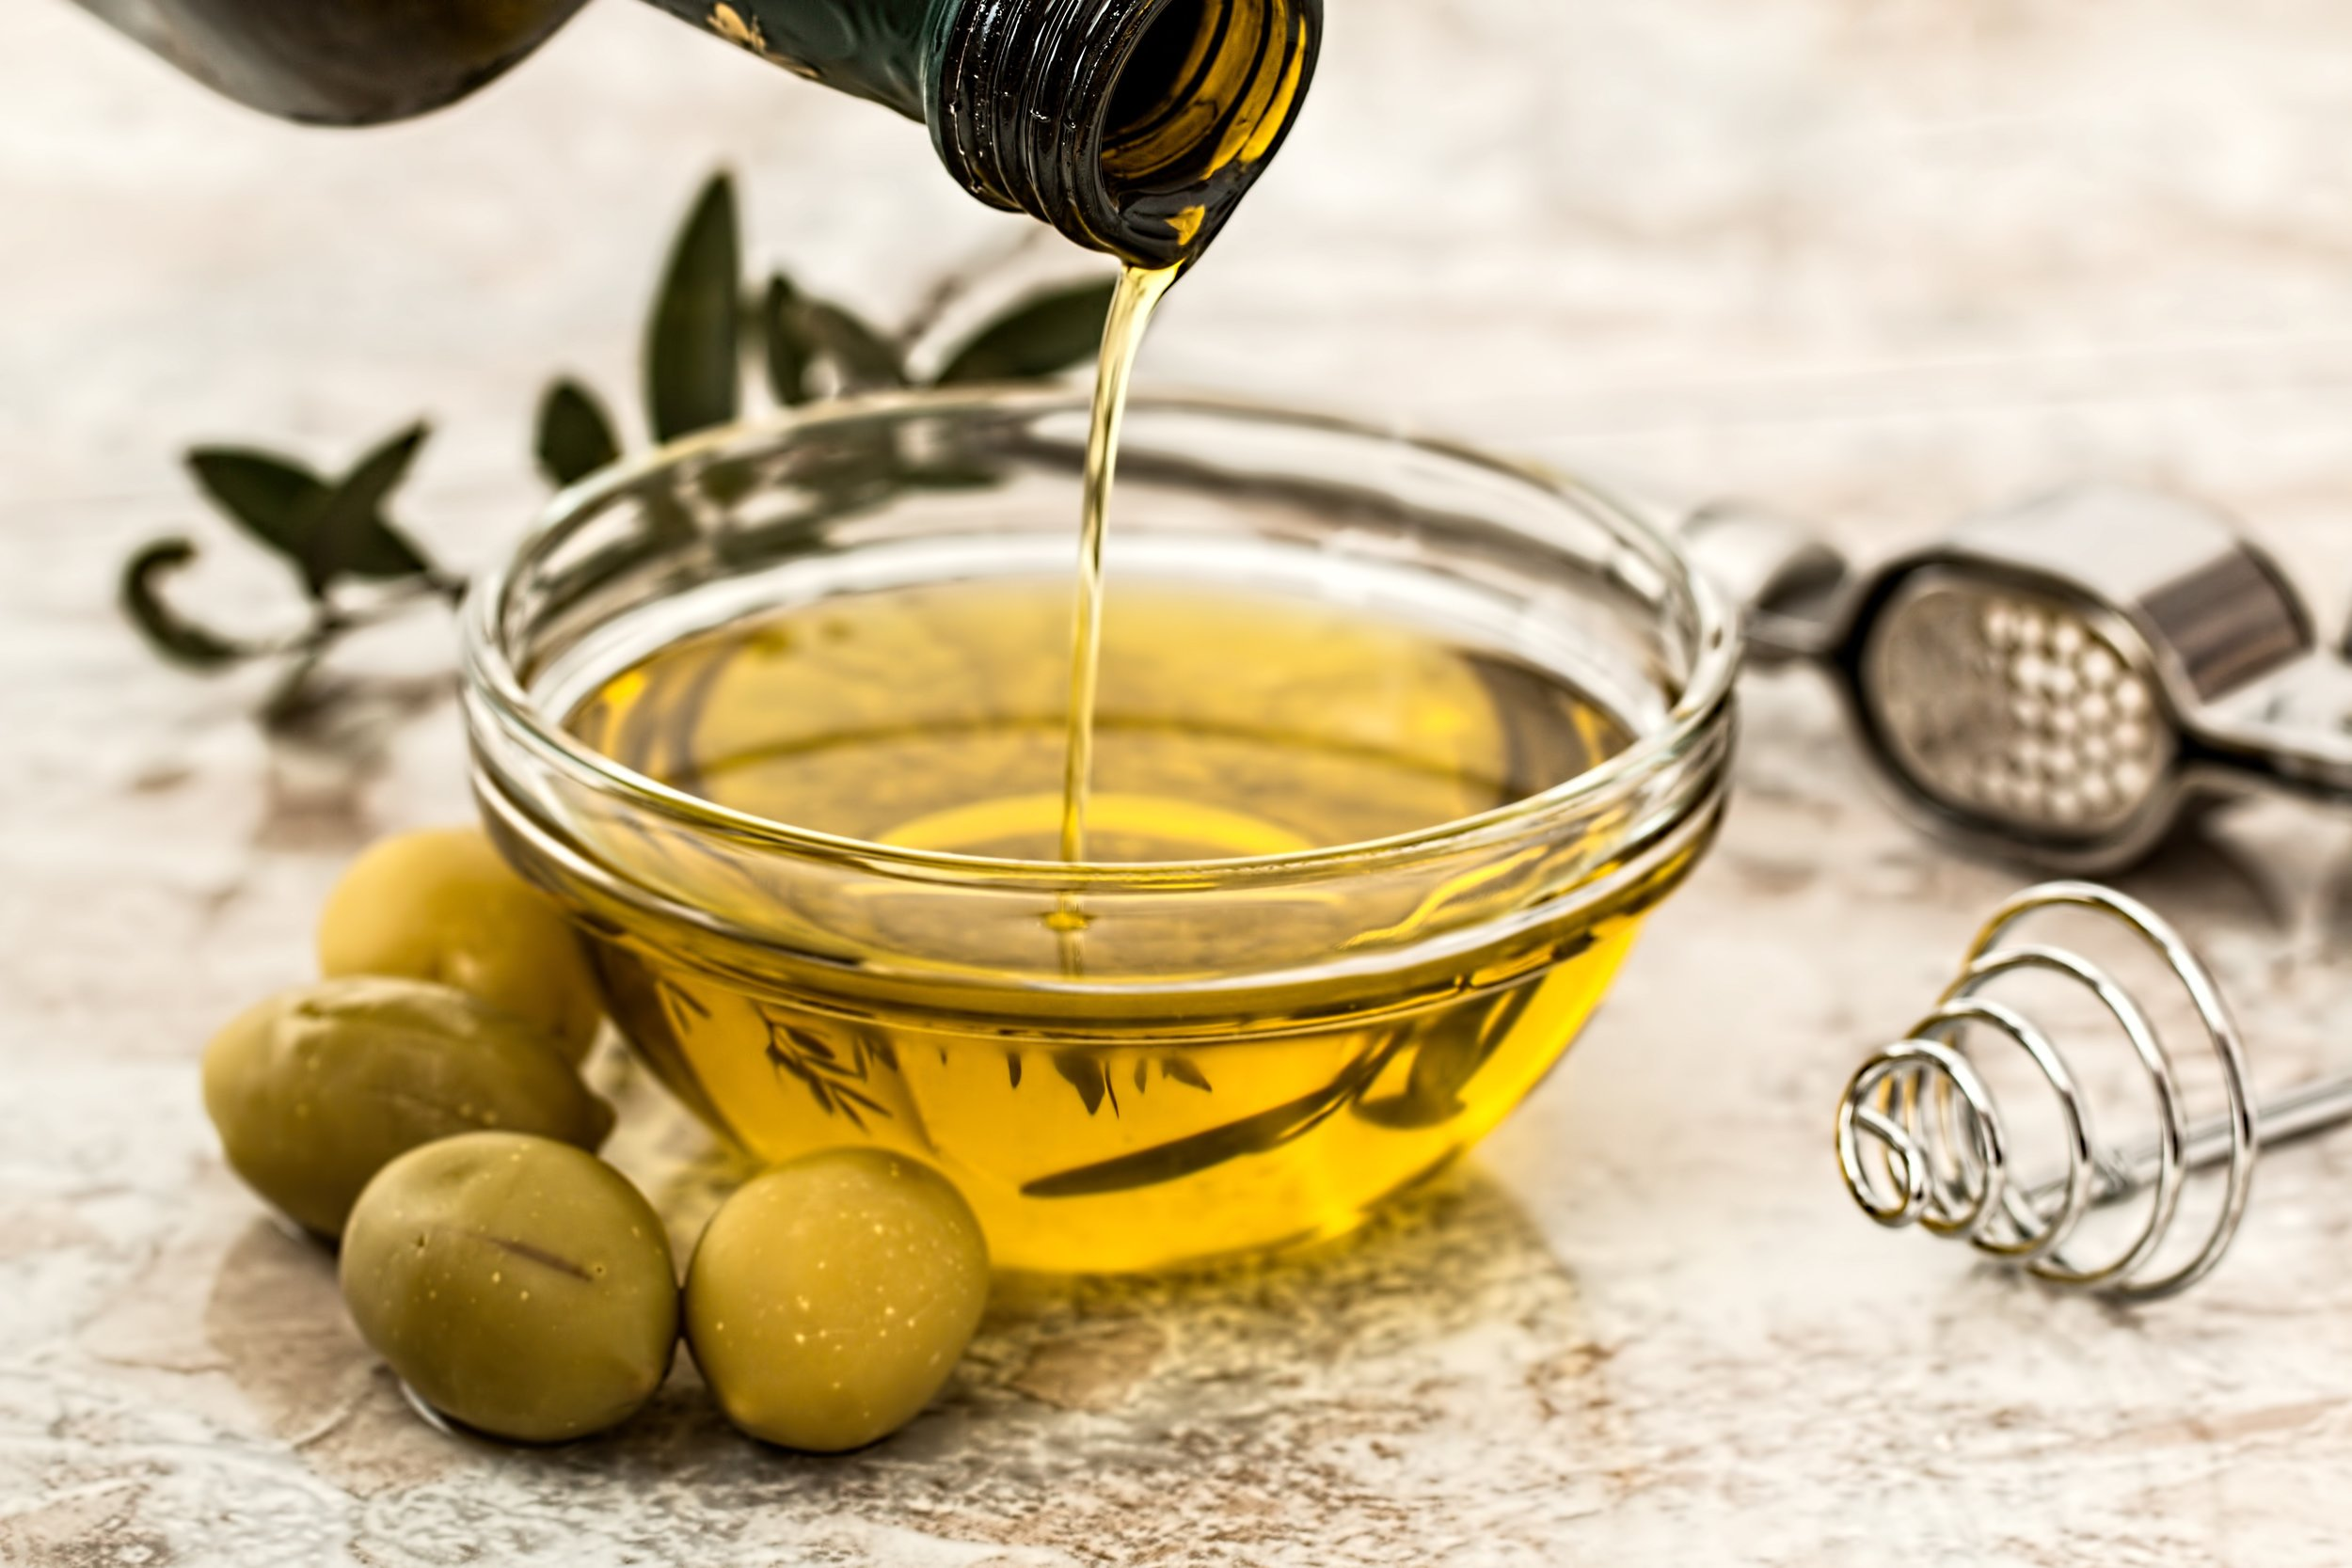 OLIVE OIL BLEND TREATMENT   OLIVE OIL HAS HAS BECOME THE GO-TO OIL FOR EVERY HAIR TEXTURE FOR HEALTH BENEFITS.  OLIVE OIL GIVES MOISTURE, ELASTICITY, AND SHINE TO HAIR, AND IT IS RICH IN VITAMIN E AND FATTY ACIDS OMEGA-3, -6, AND 9, WHICH NOURISH THE FOLLICLE.